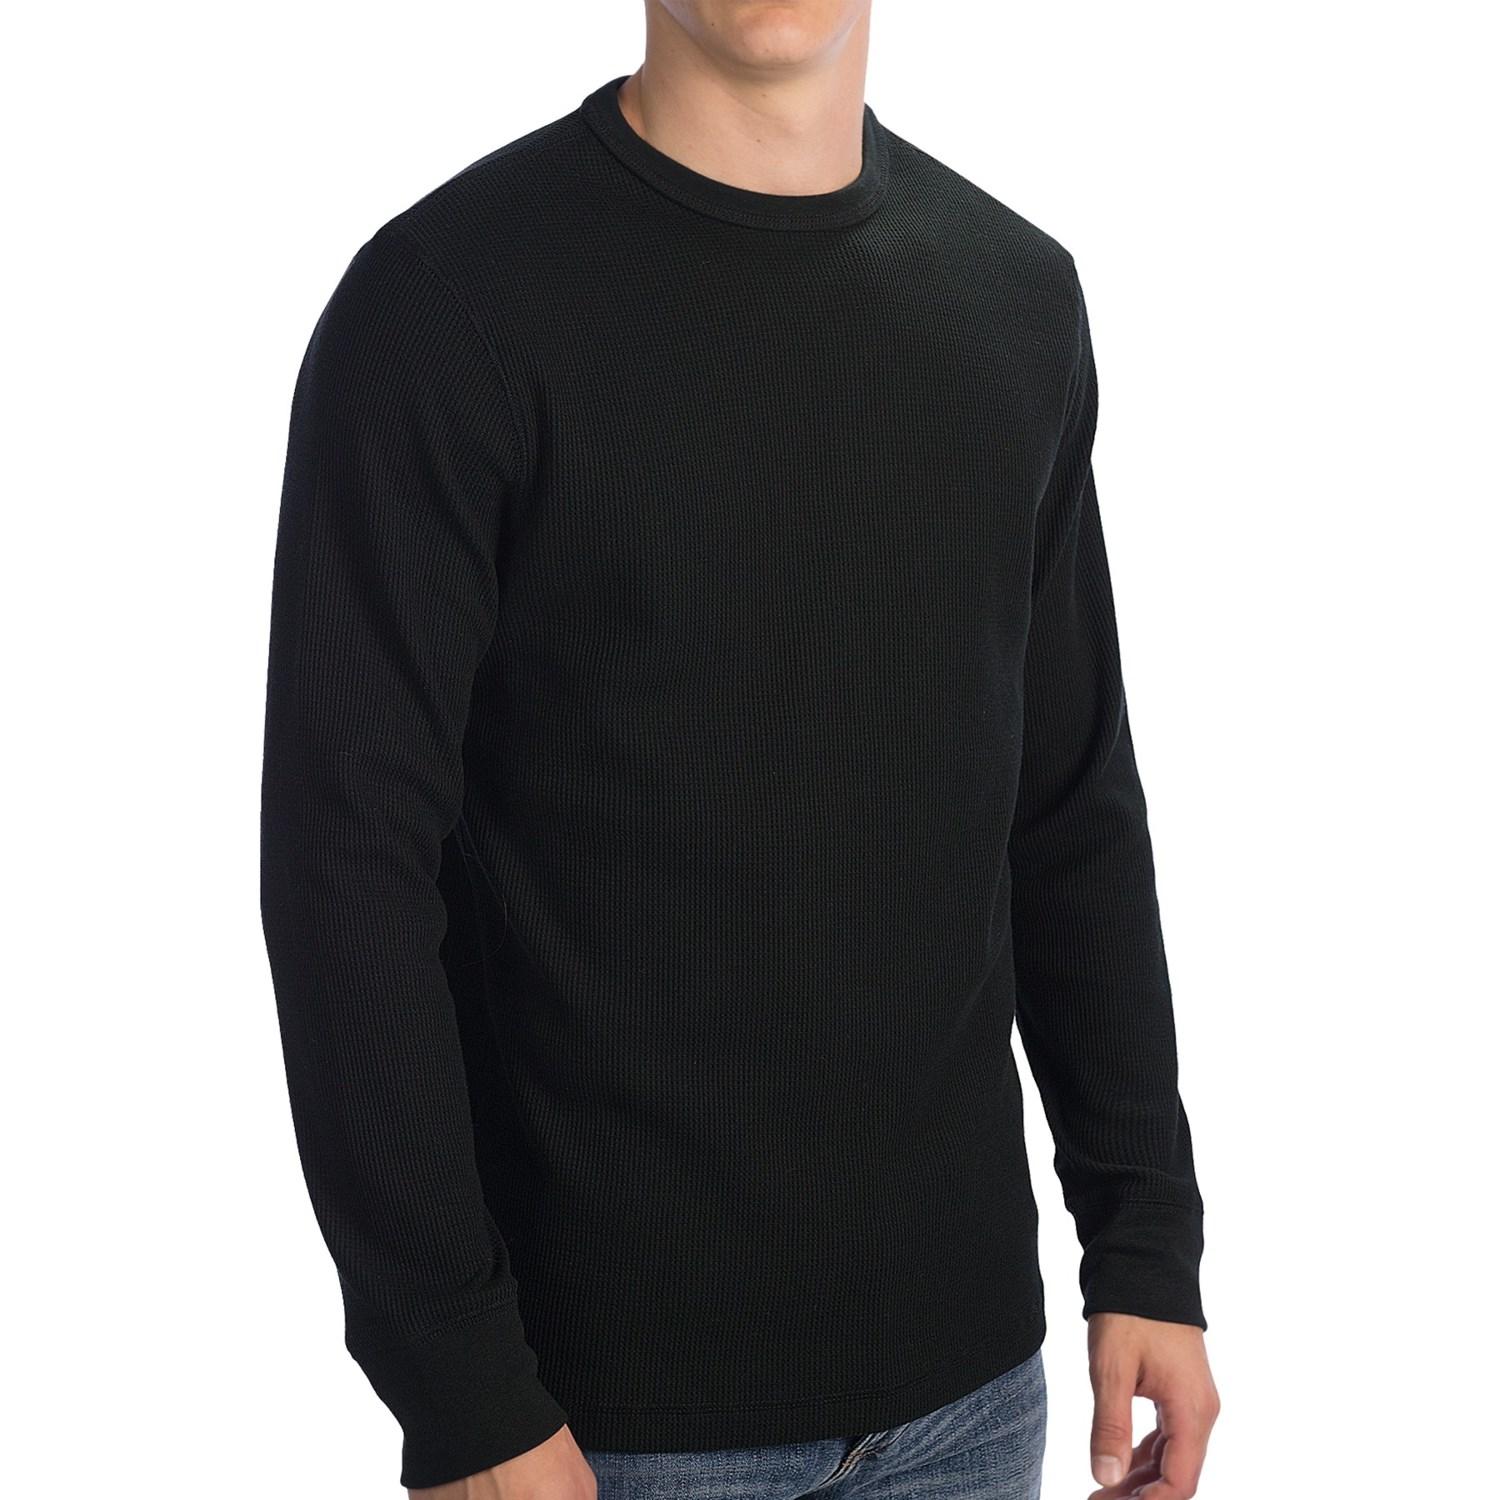 Find great deals on eBay for Mens Long Sleeve Thermal in Casual Shirts for Different Occasions. Shop with confidence. Find great deals on eBay for Mens Long Sleeve Thermal in Casual Shirts for Different Occasions. Shop with confidence. Skip to main content. eBay: Shop by category. Shop by category.